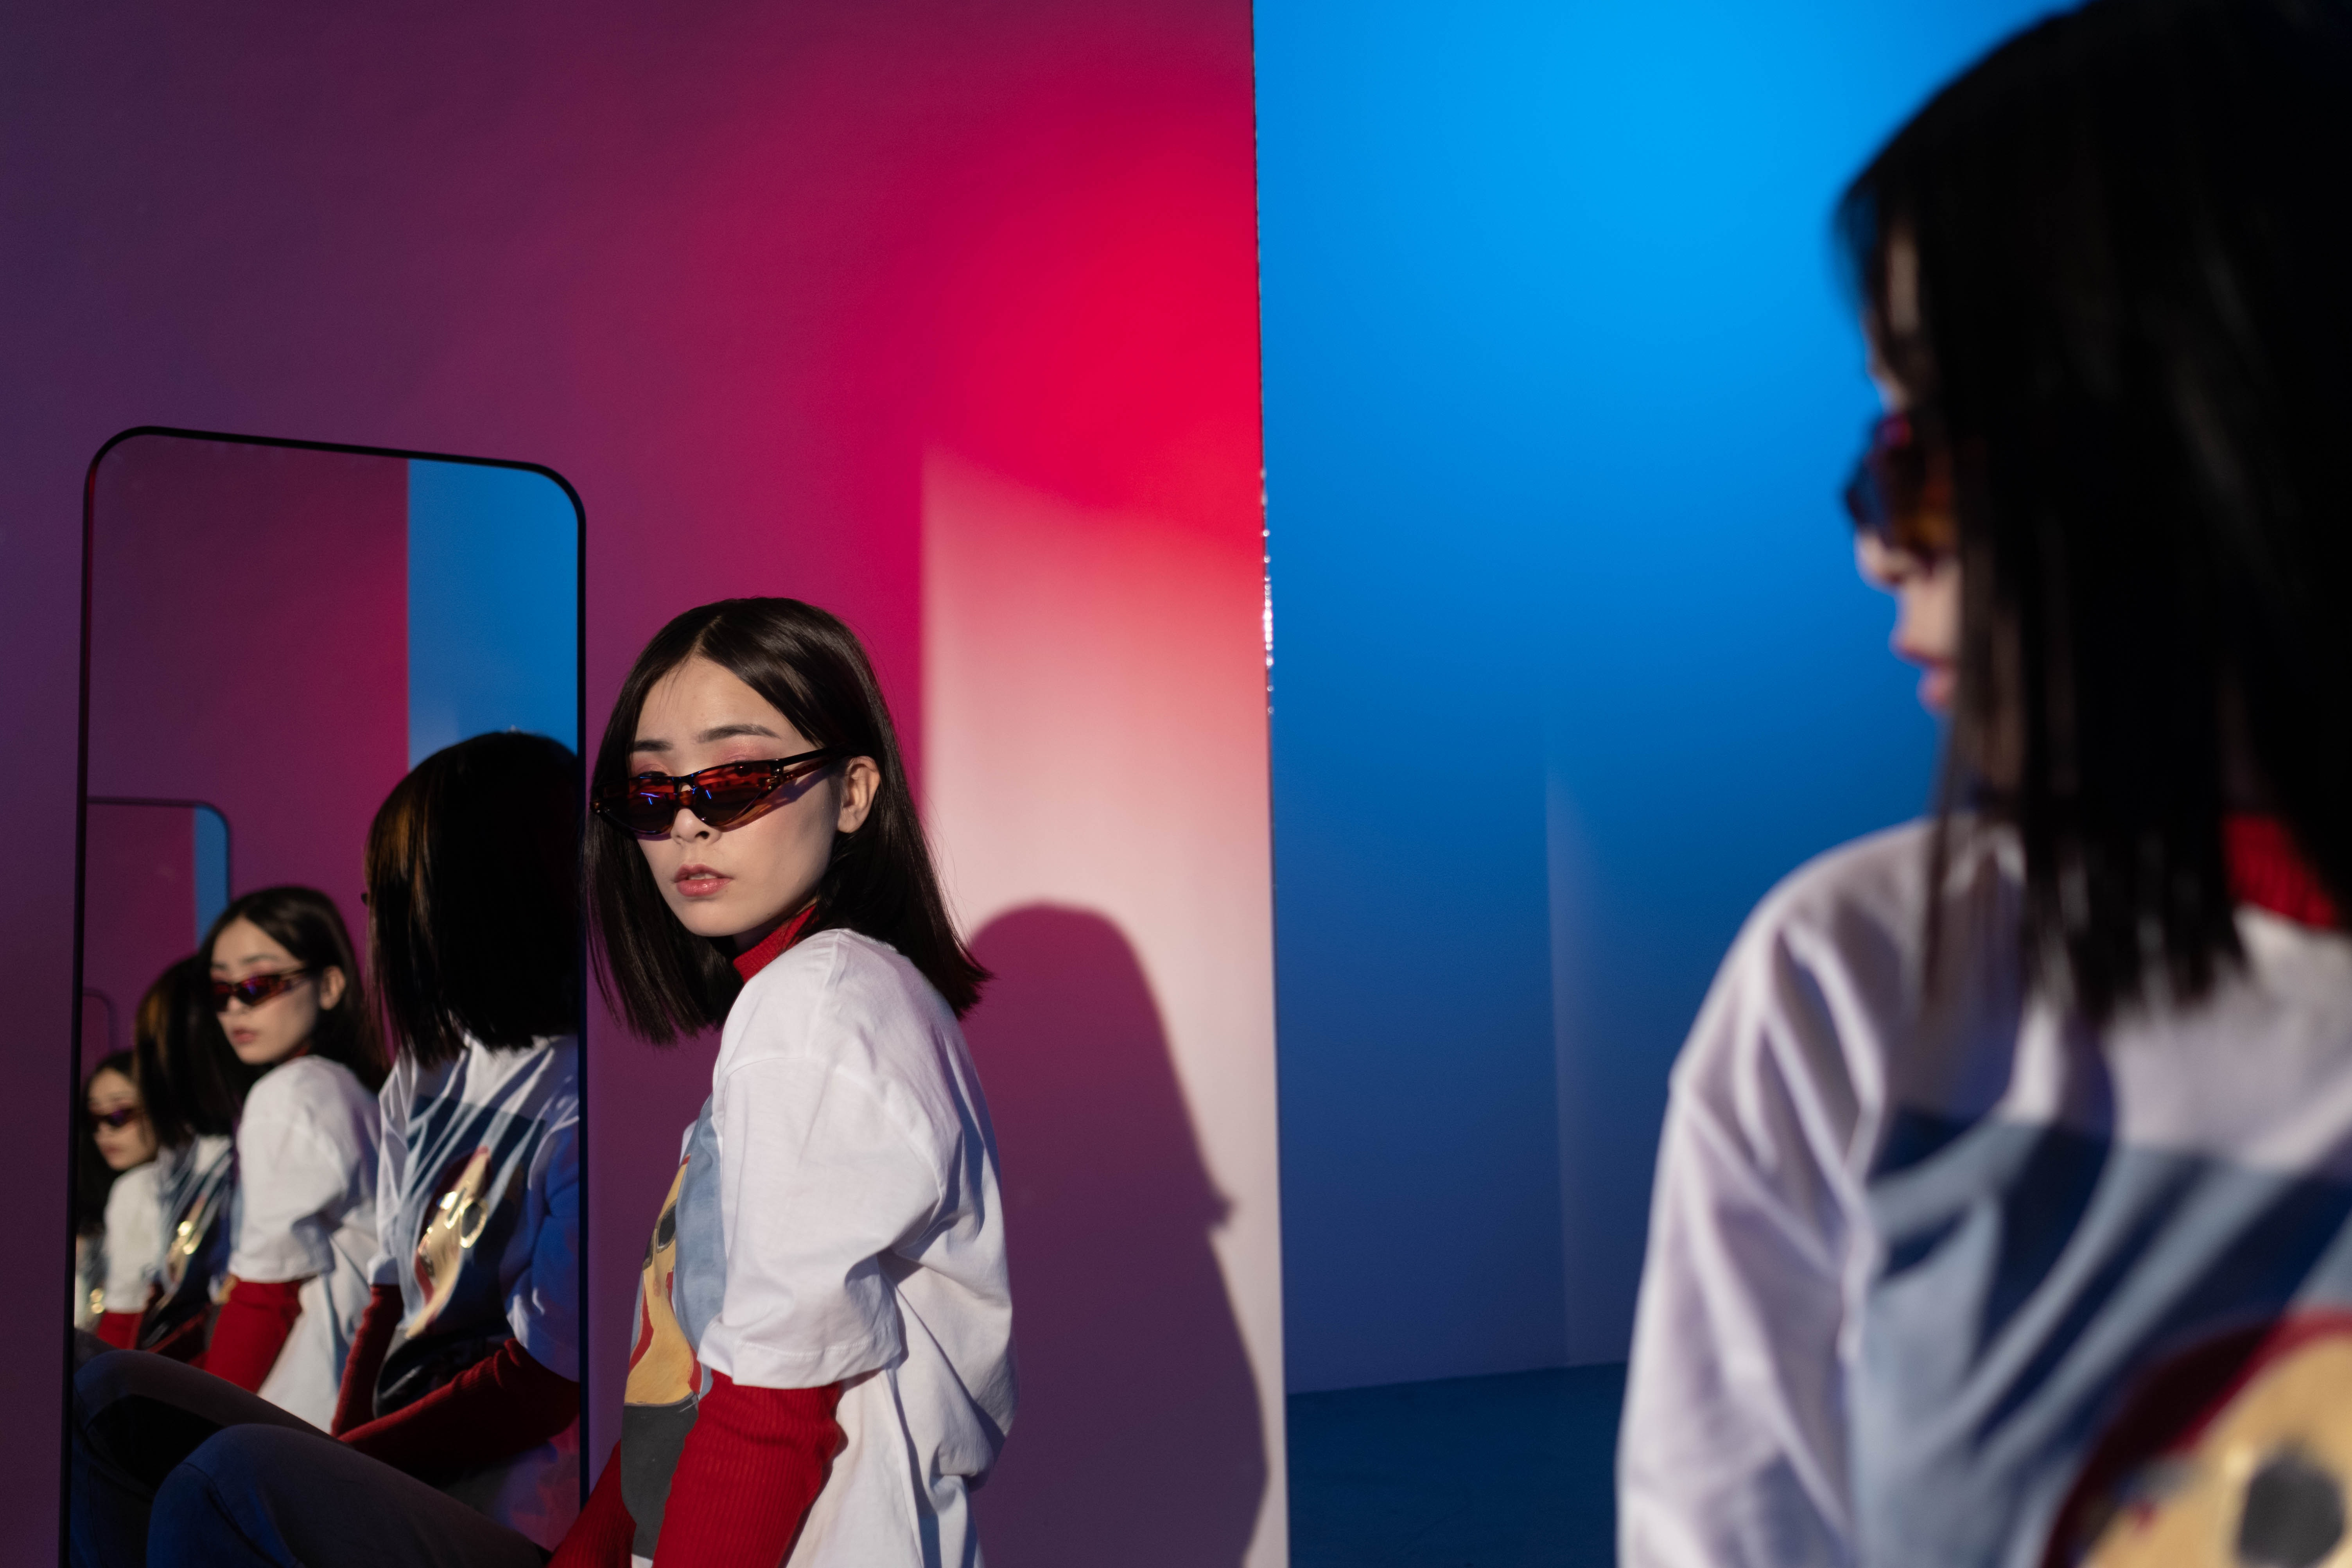 Woman in sunglasses between two mirrors, looking at the many reflections of herself